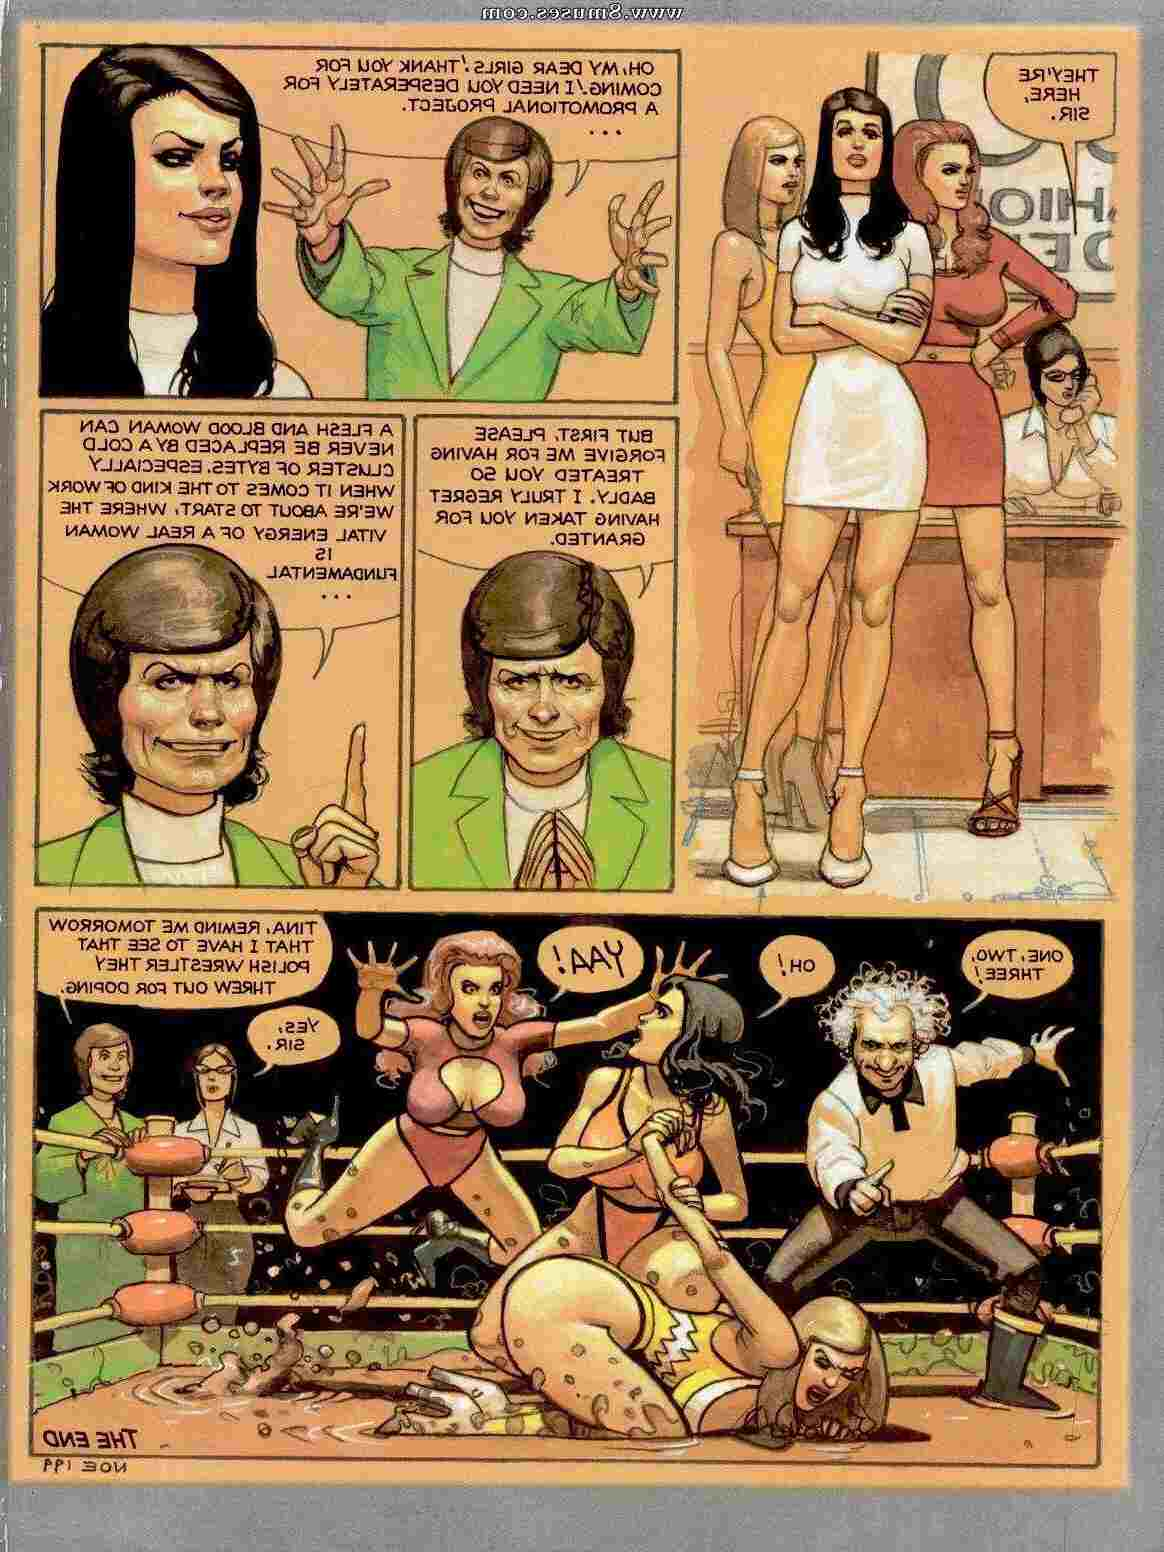 Ignacio-Noe-Comics/All-the-Right-Career-Moves All_the_Right_Career_Moves__8muses_-_Sex_and_Porn_Comics_8.jpg